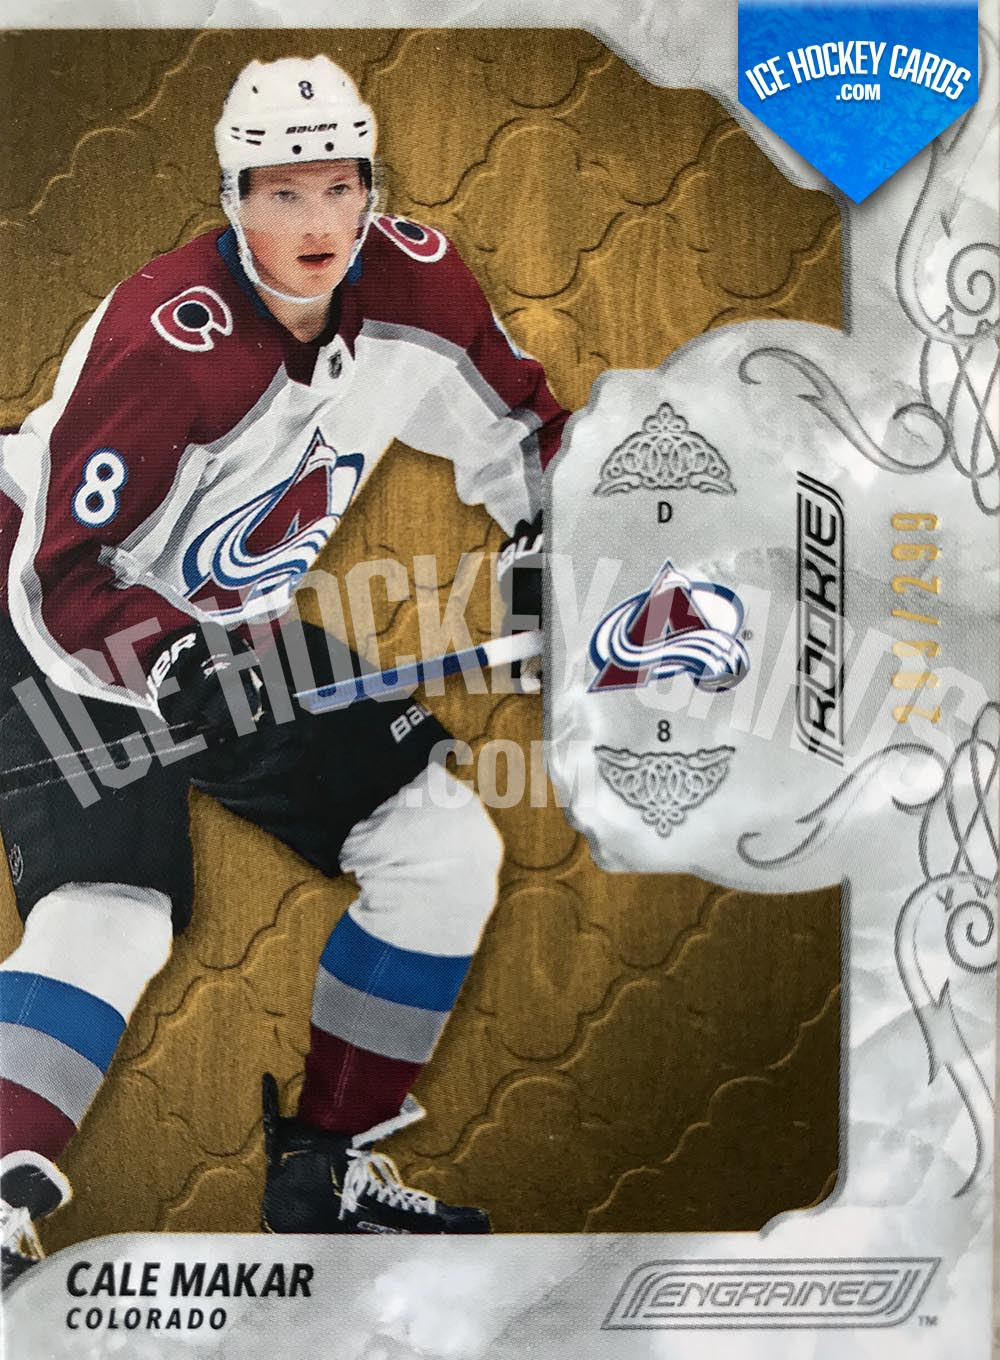 Upper Deck - Engrained 2019-20 - Cale Makar Base Rookie Card